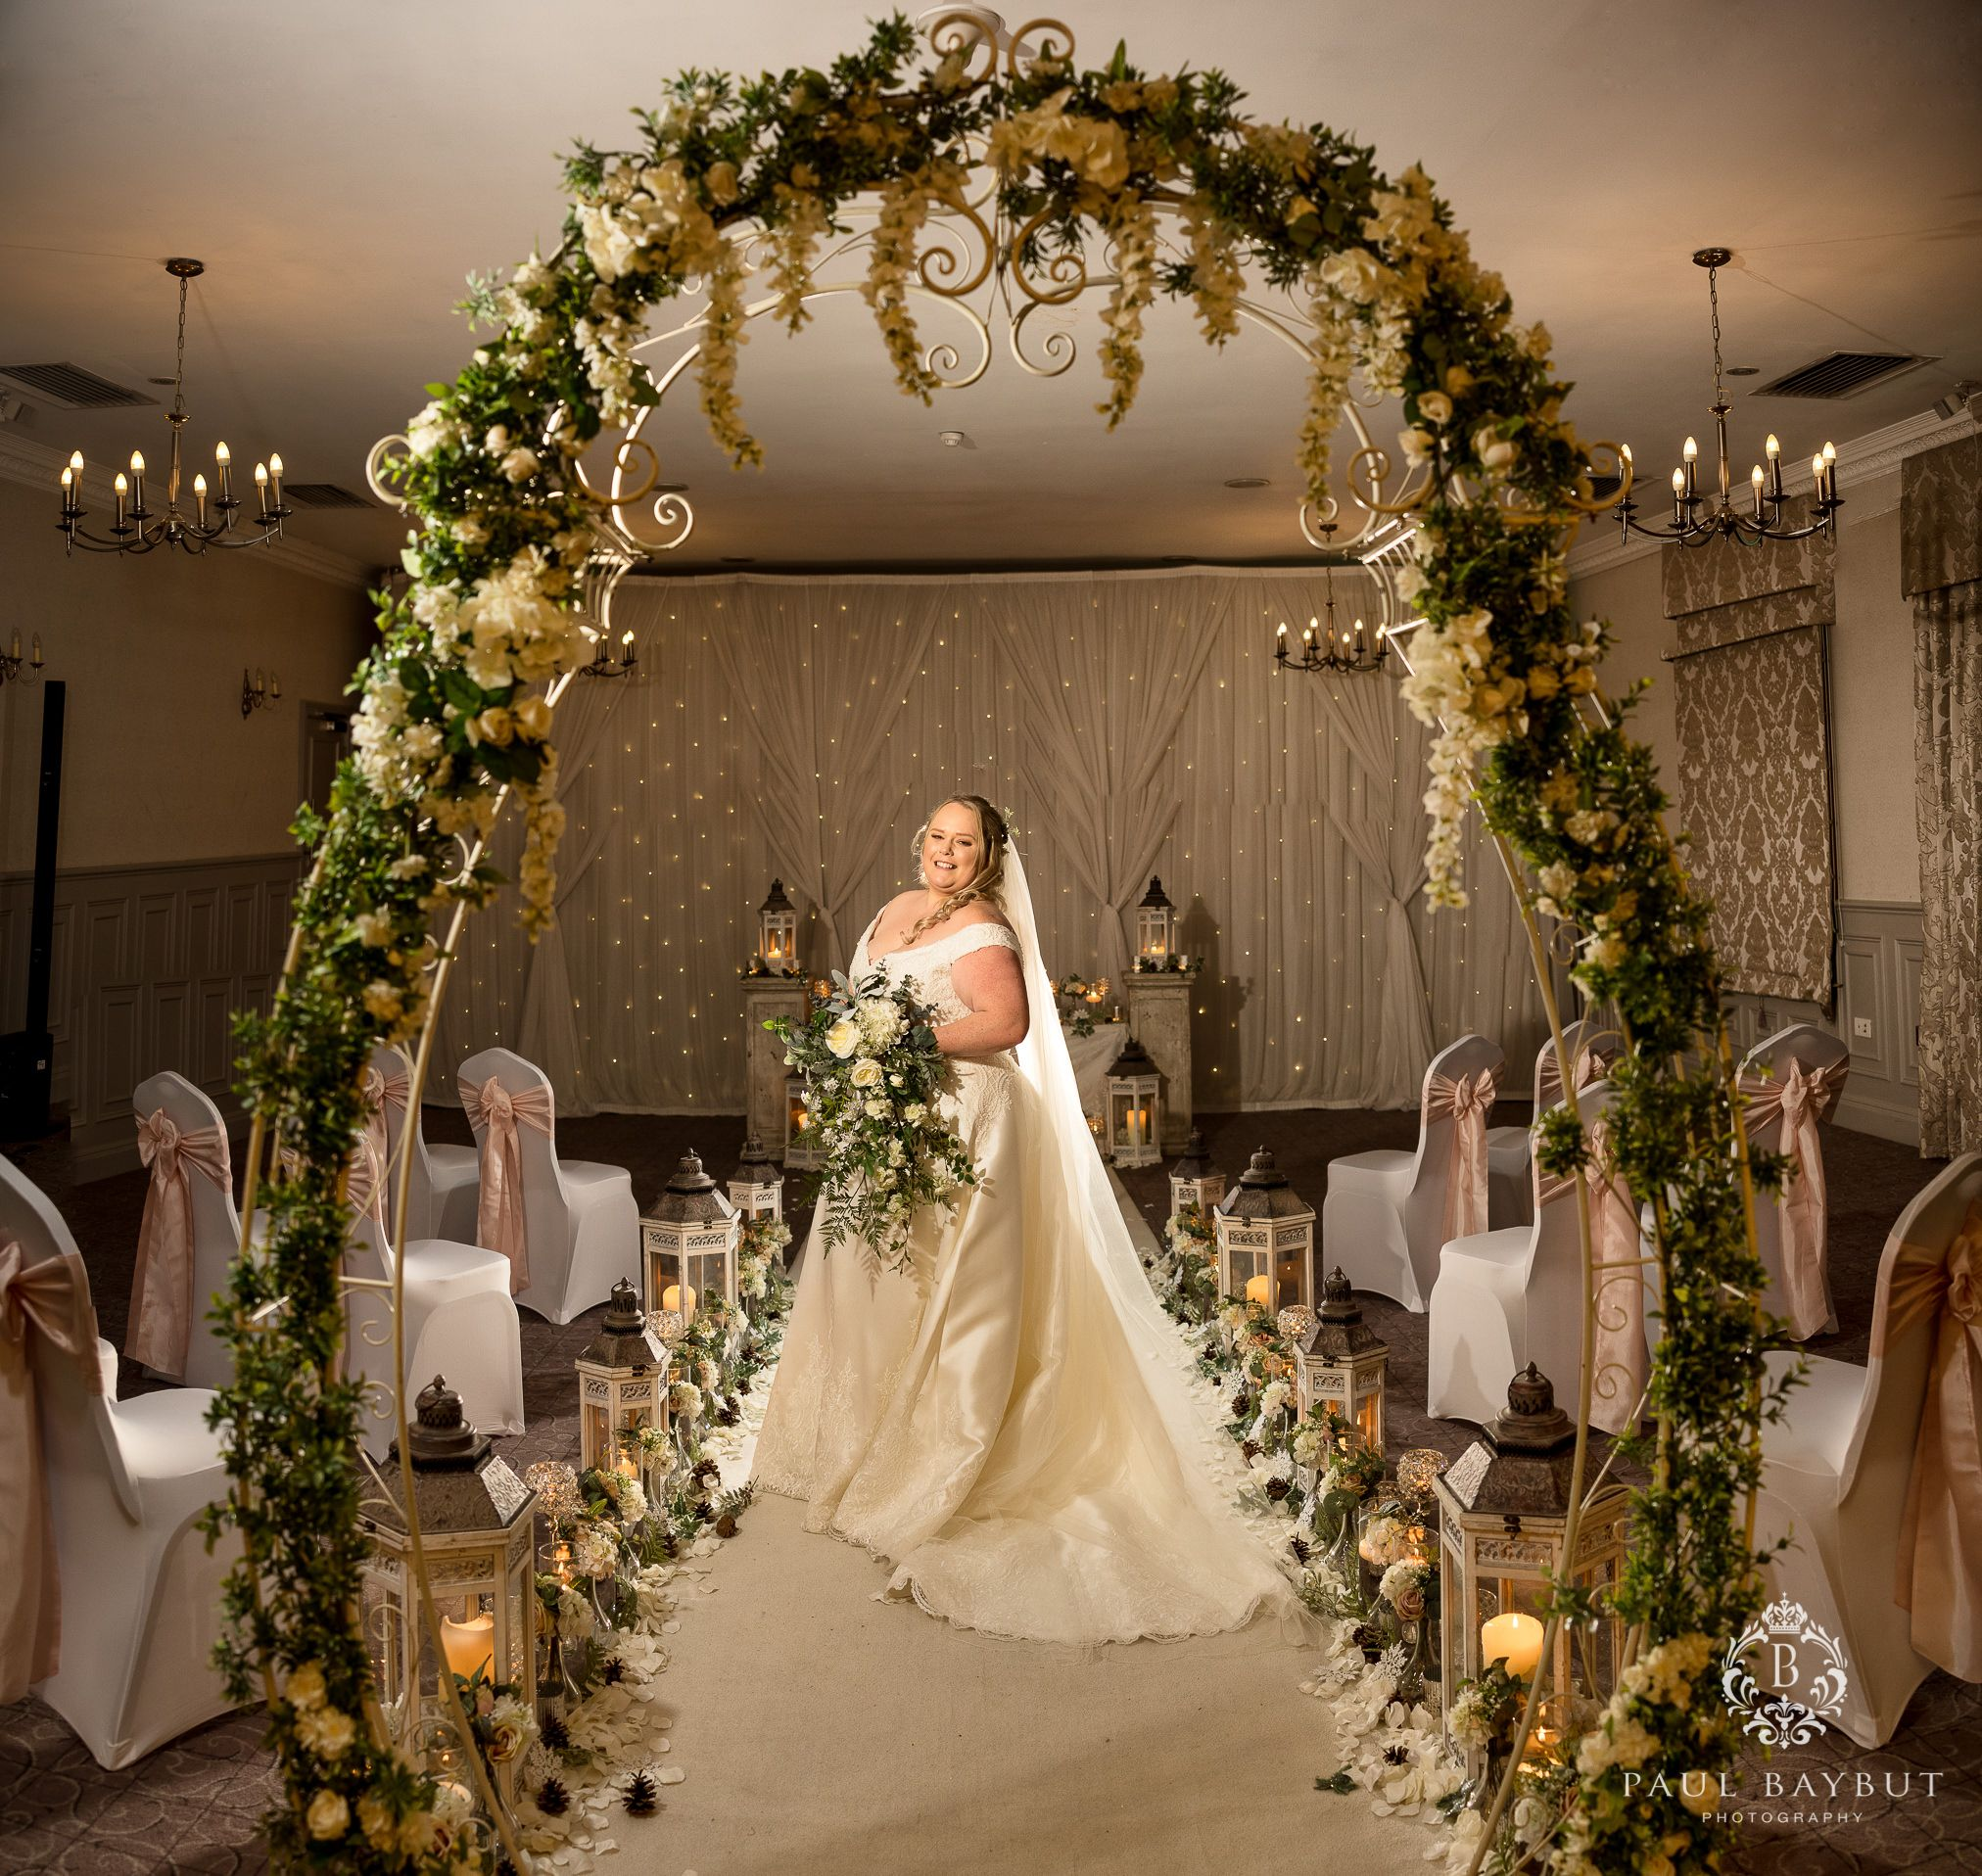 Winter wedding photography at Mottram Hall of bride posing after the ceremony